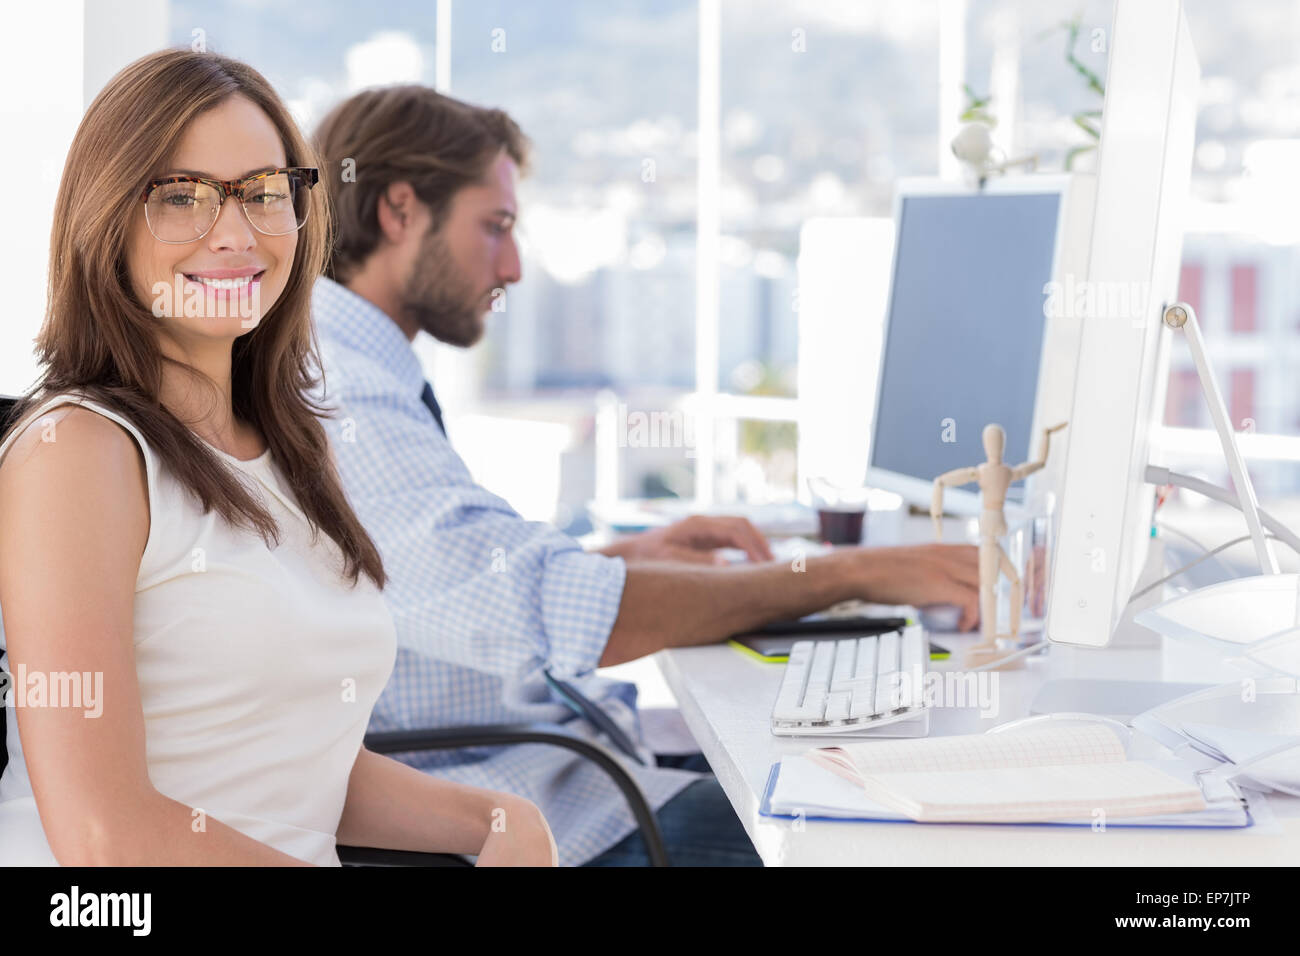 Portrait of smiling designer with reading glasses - Stock Image